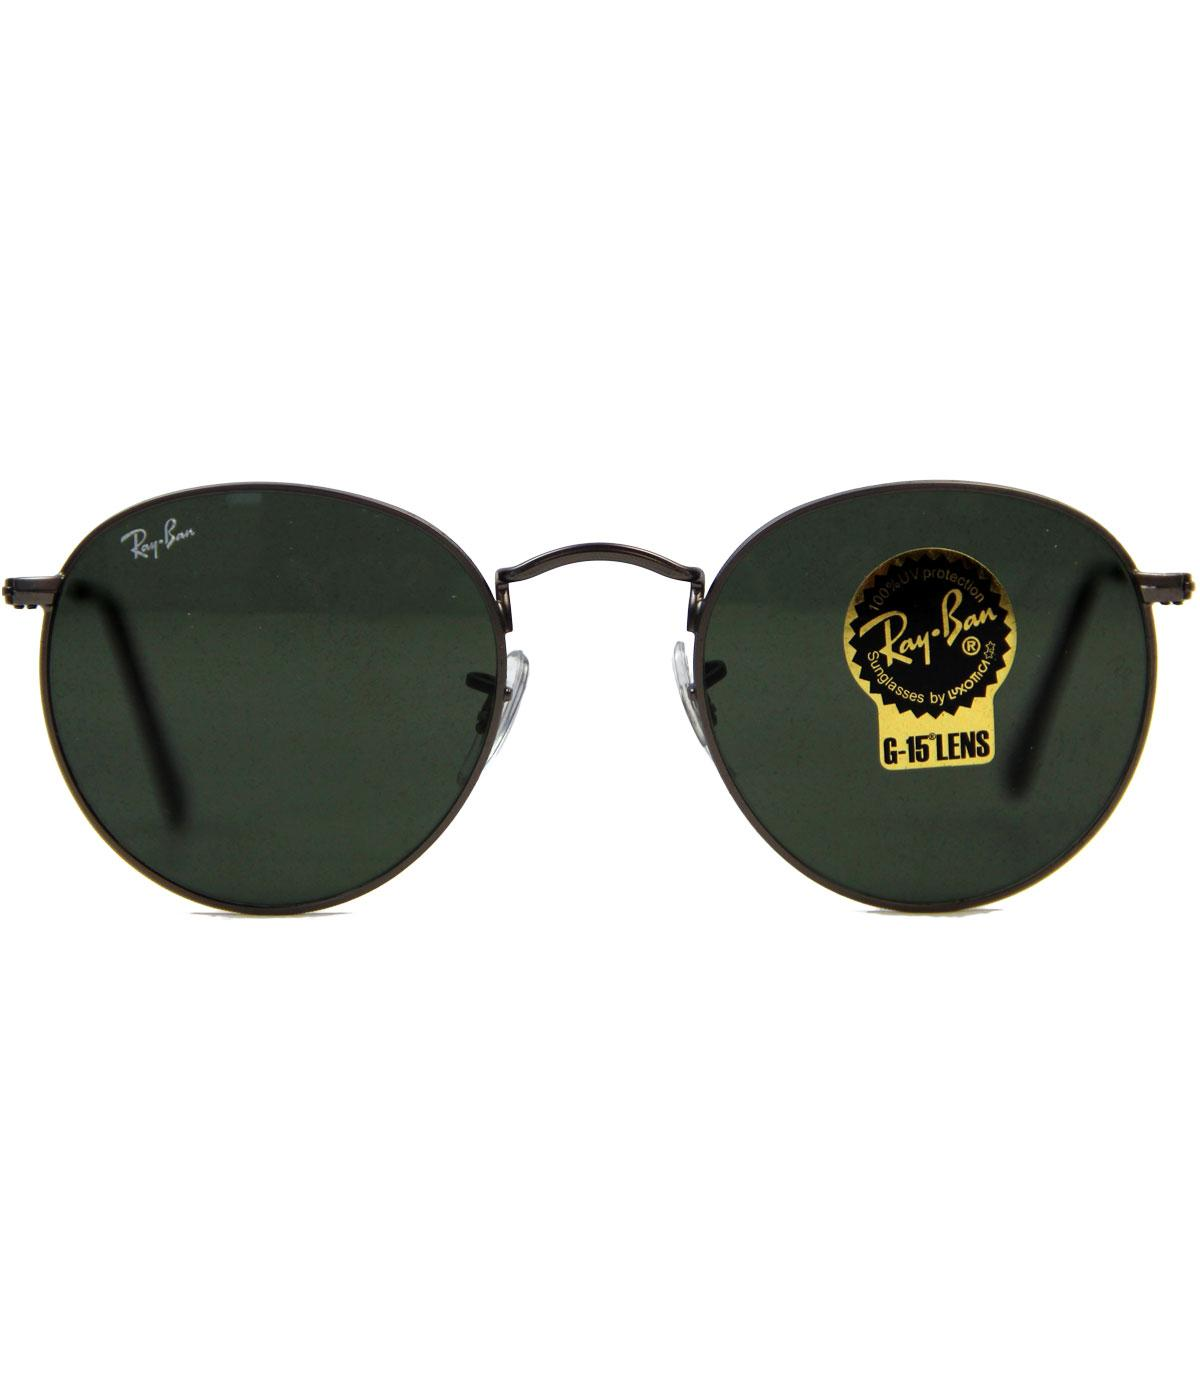 Ray-Ban Retro Mod RB3447 Indie Round Sunglasses GM